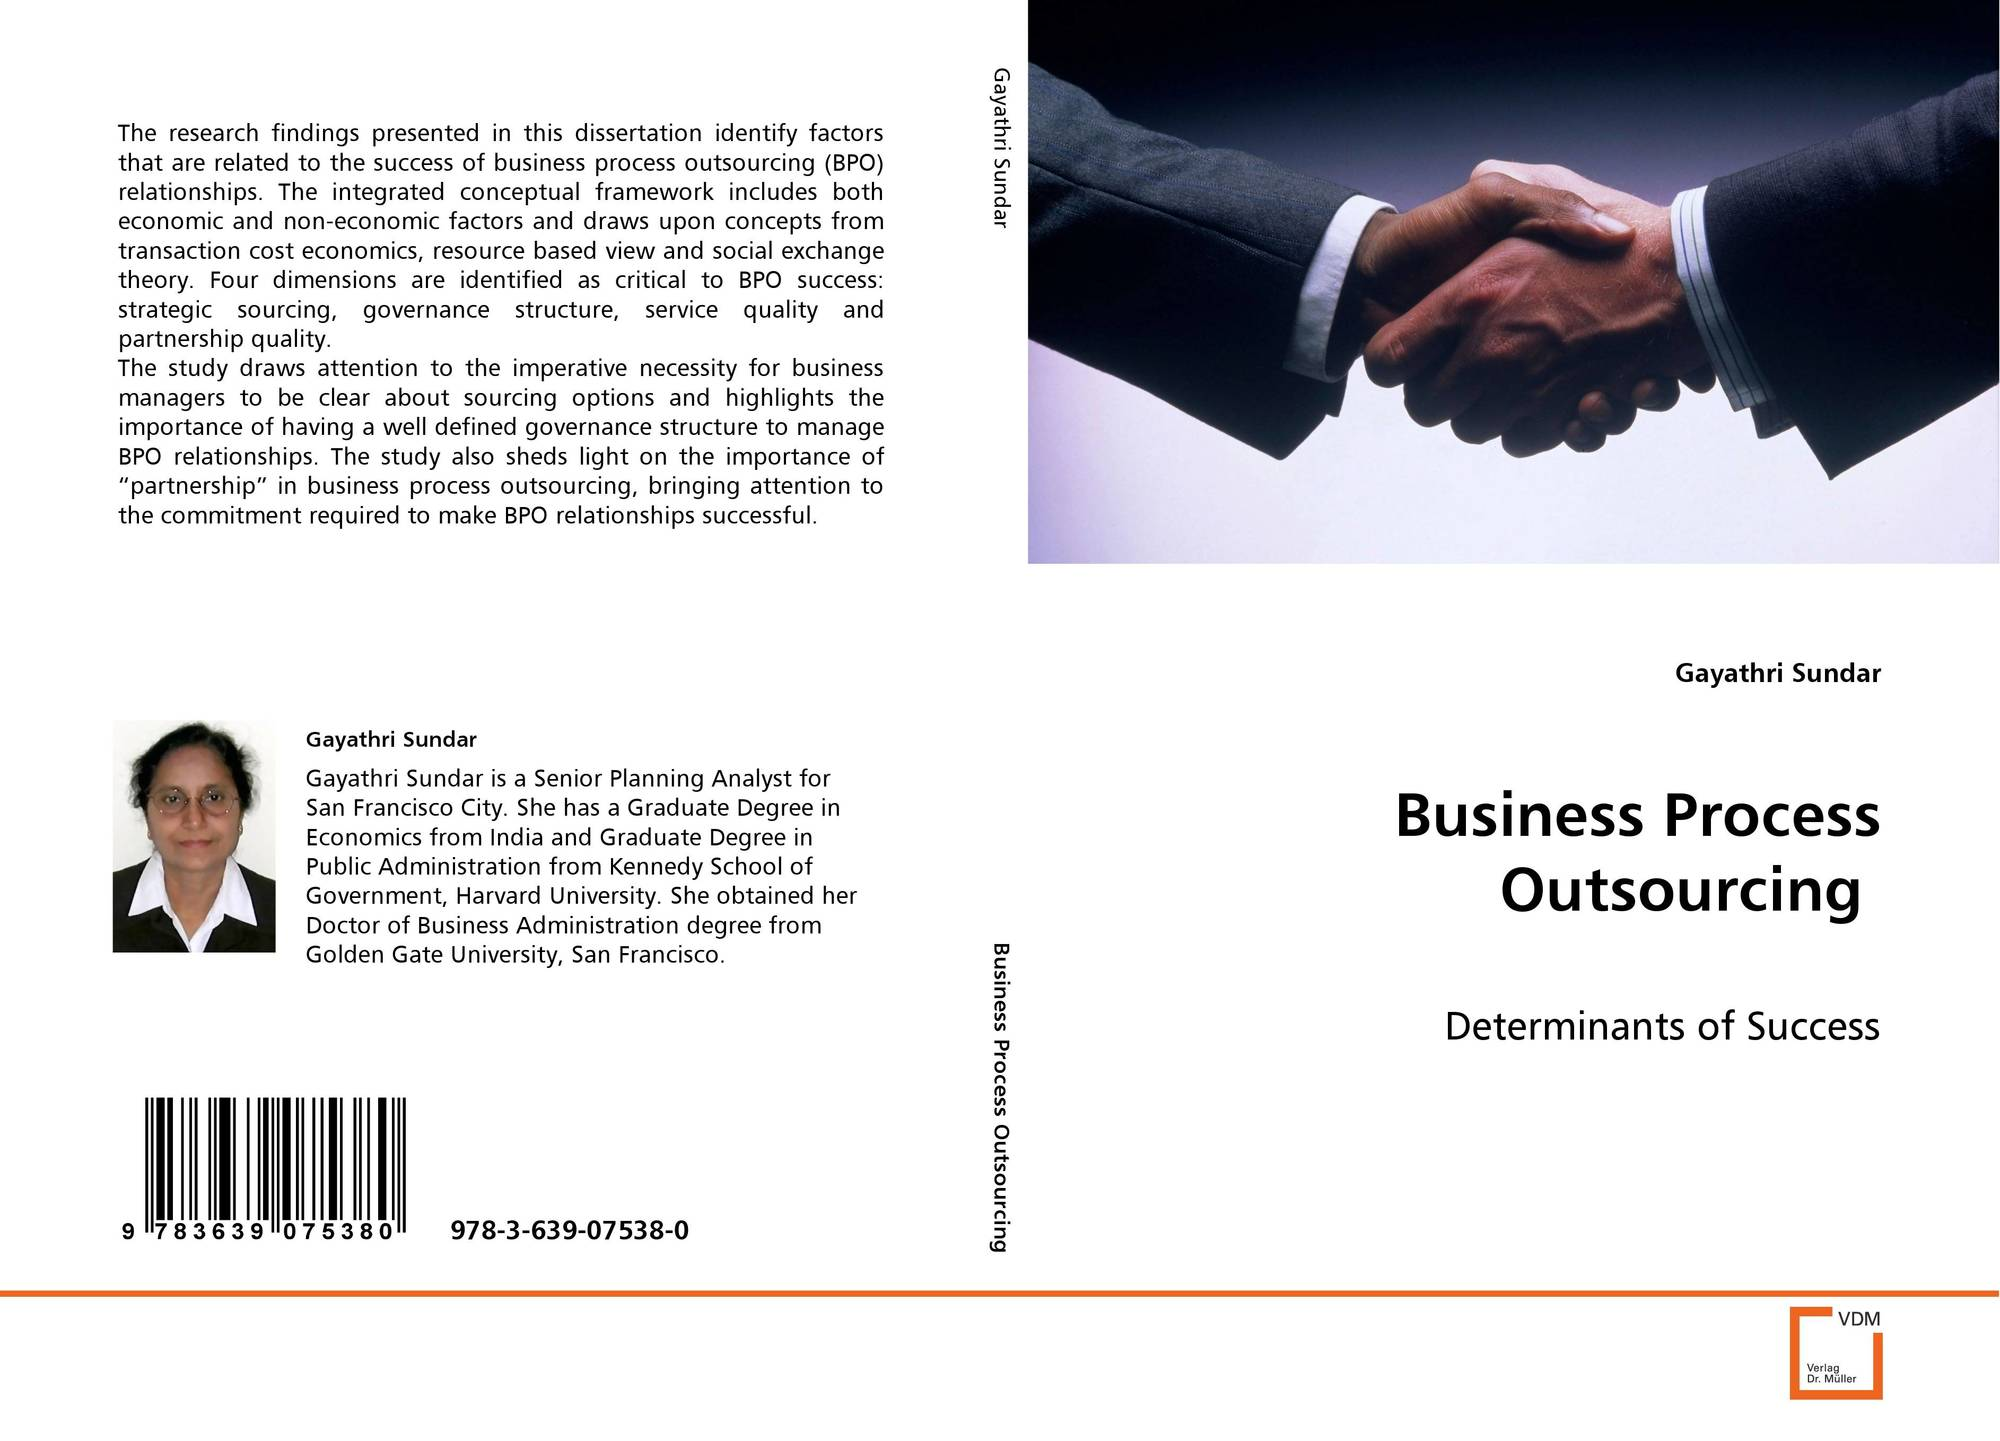 business process outsourcing bpo Invensis is a leading business process outsourcing (bpo) services company providing cost-effective customer service across industries for a wide range of clients worldwide.